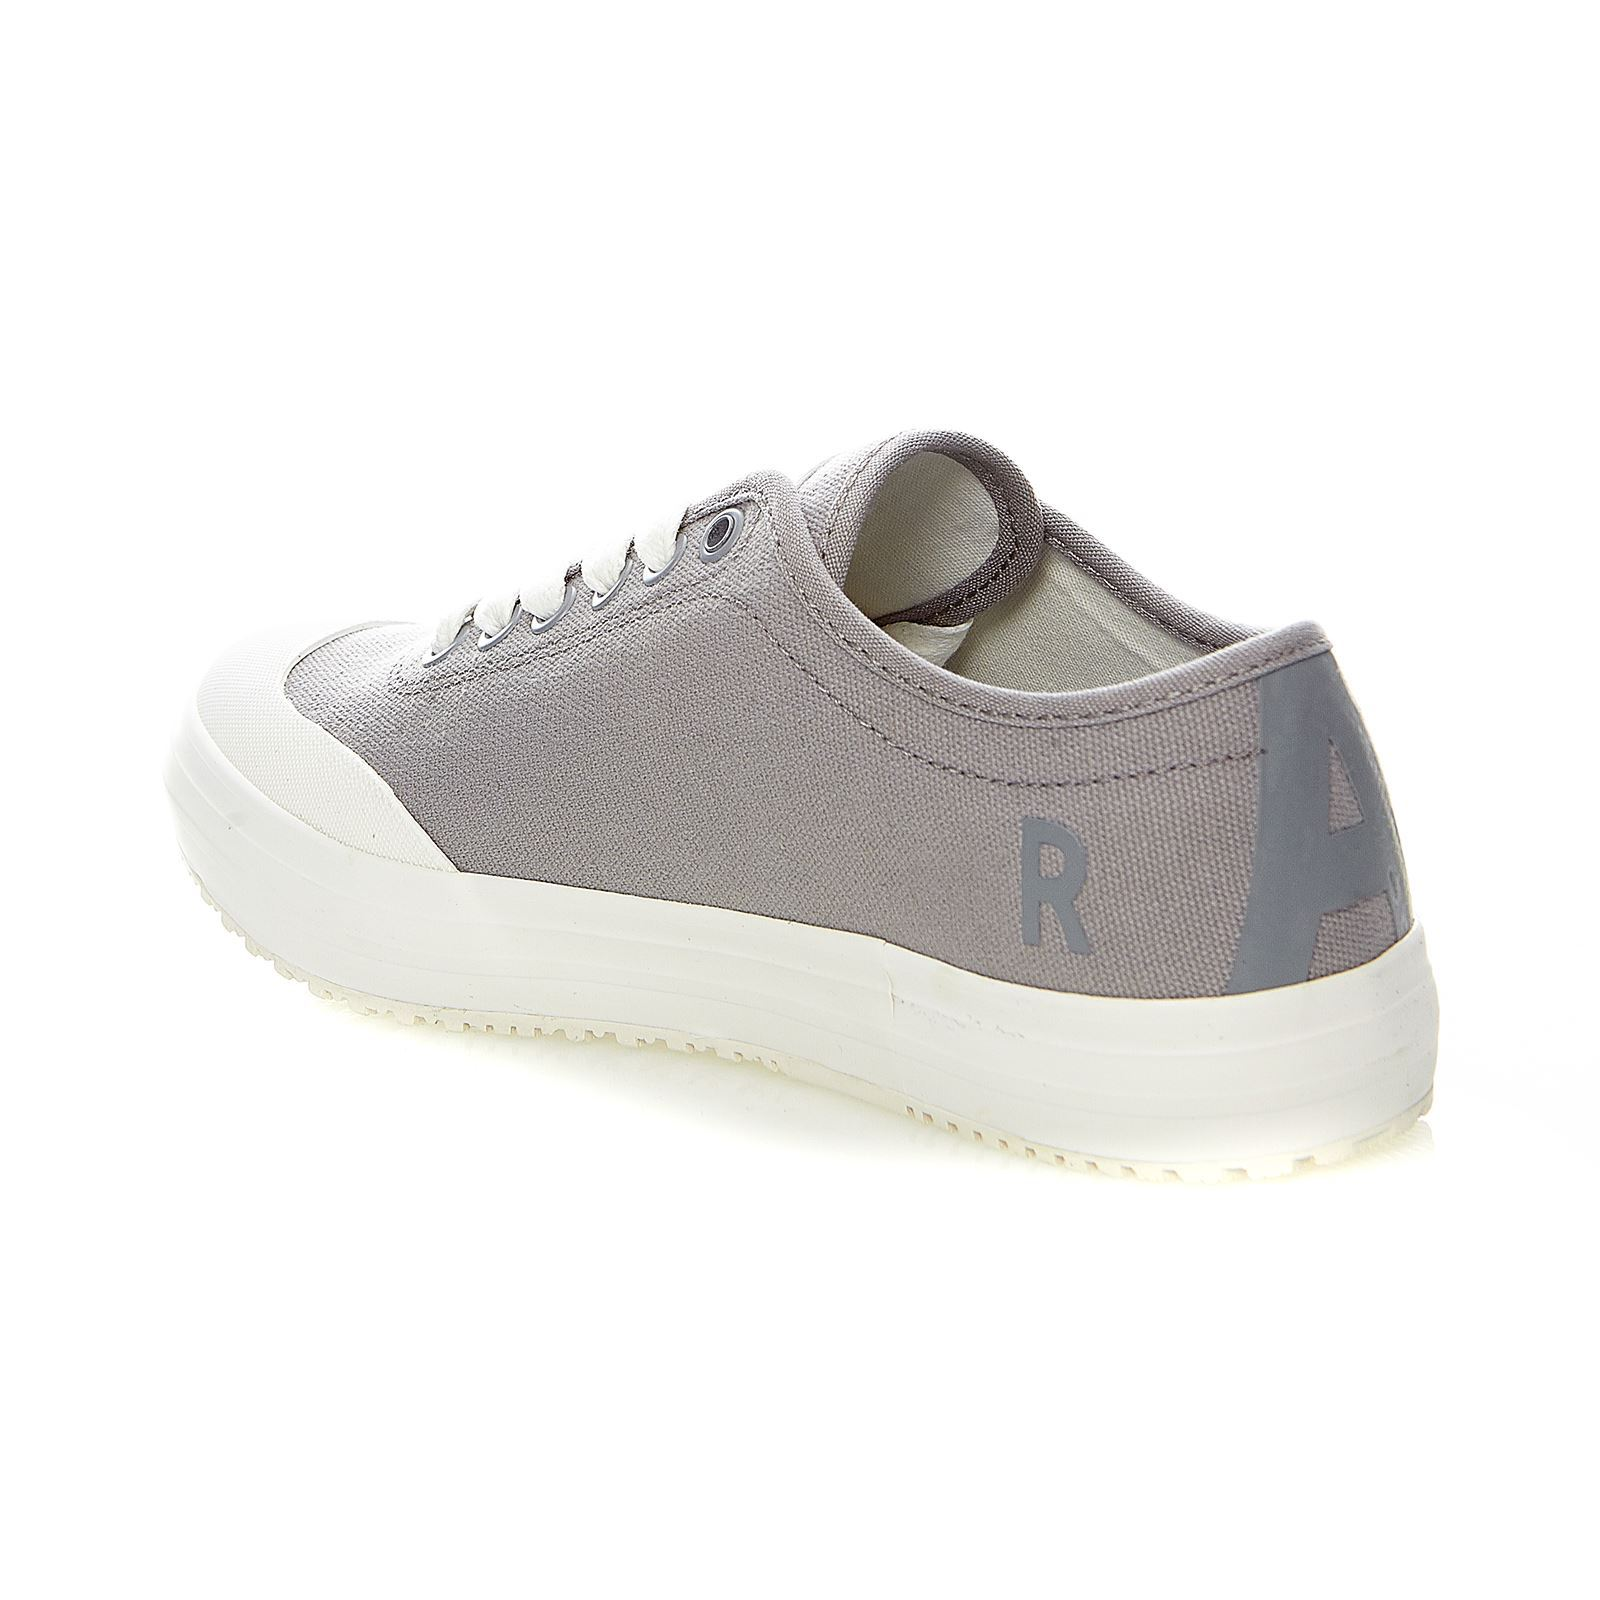 finest selection 96e6f 80259 G Star MIDRO WMN - Scarpe da tennis, sneakers - grigio ...